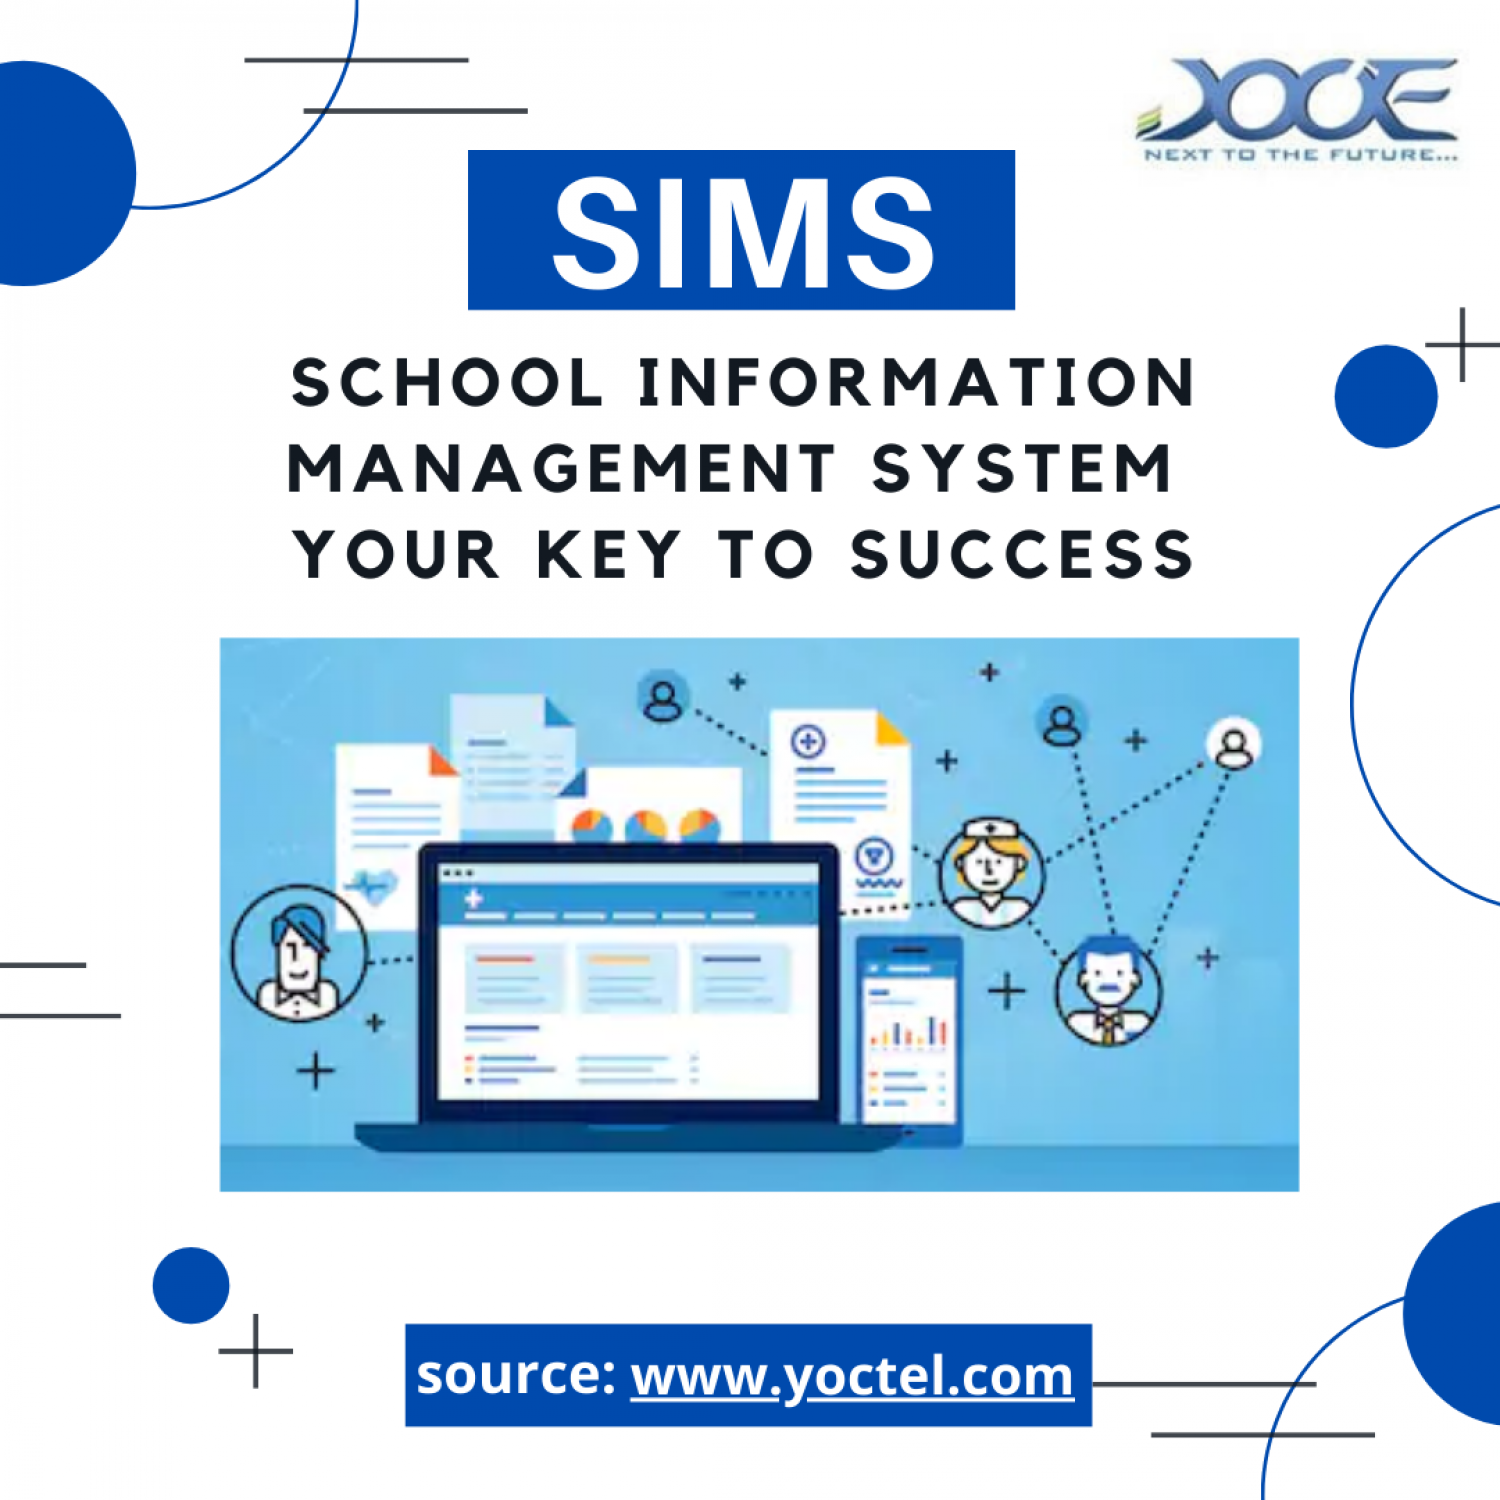 School Information Management system Infographic